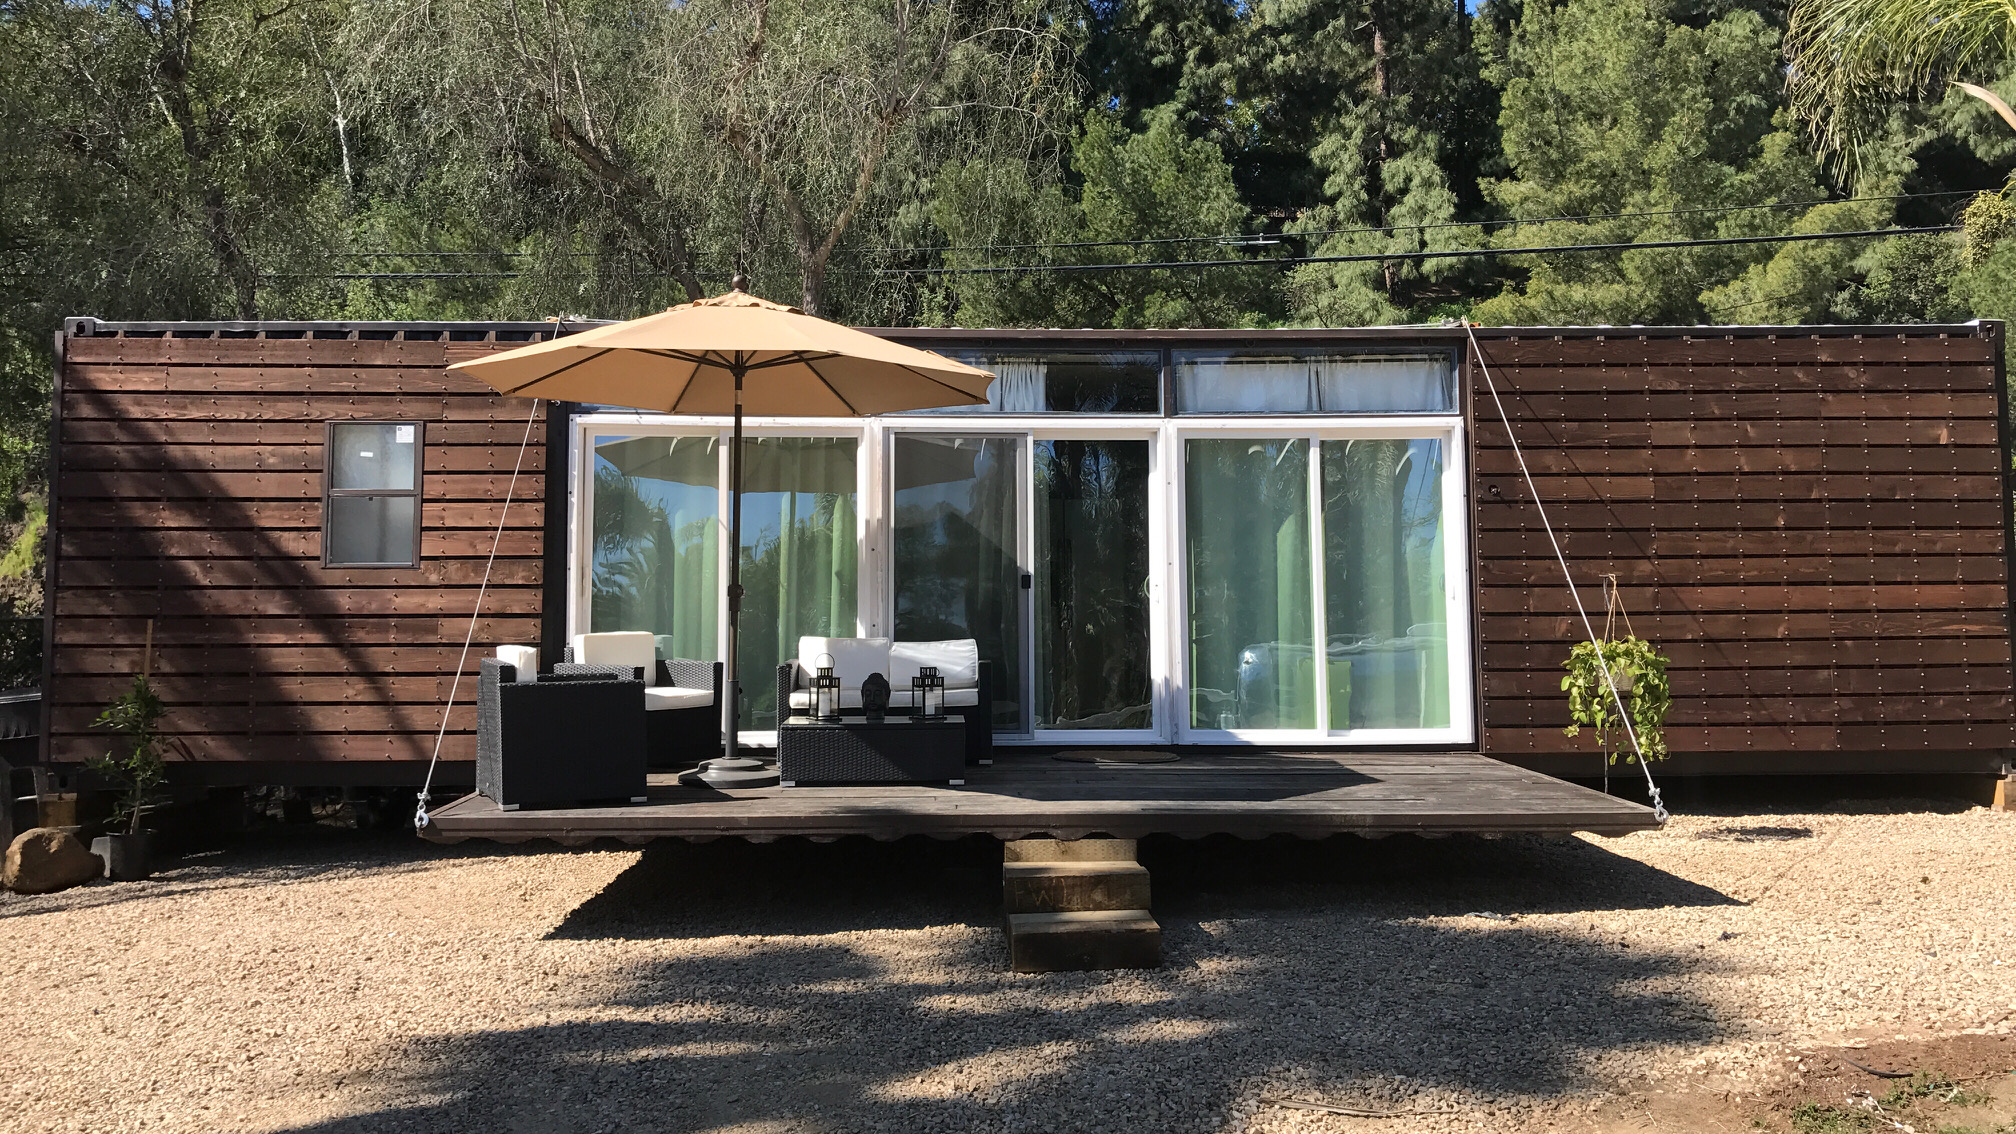 atomic container homes inc  is leading the way as the